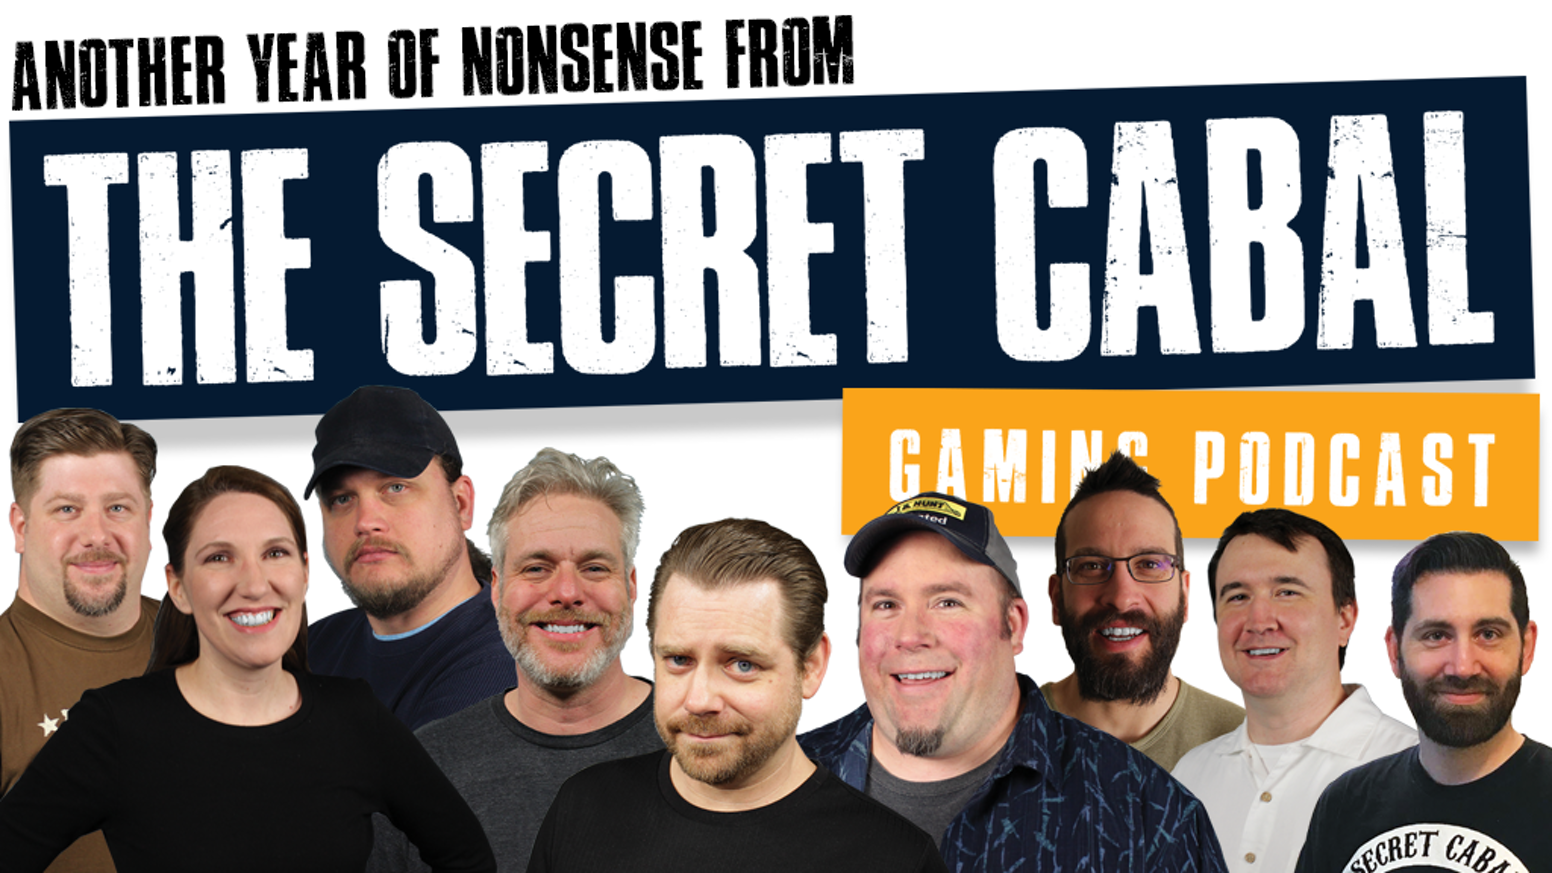 The Secret Cabal creates over 60 tabletop gaming podcast episodes per year plus videos, live streams, audio dramas and more.